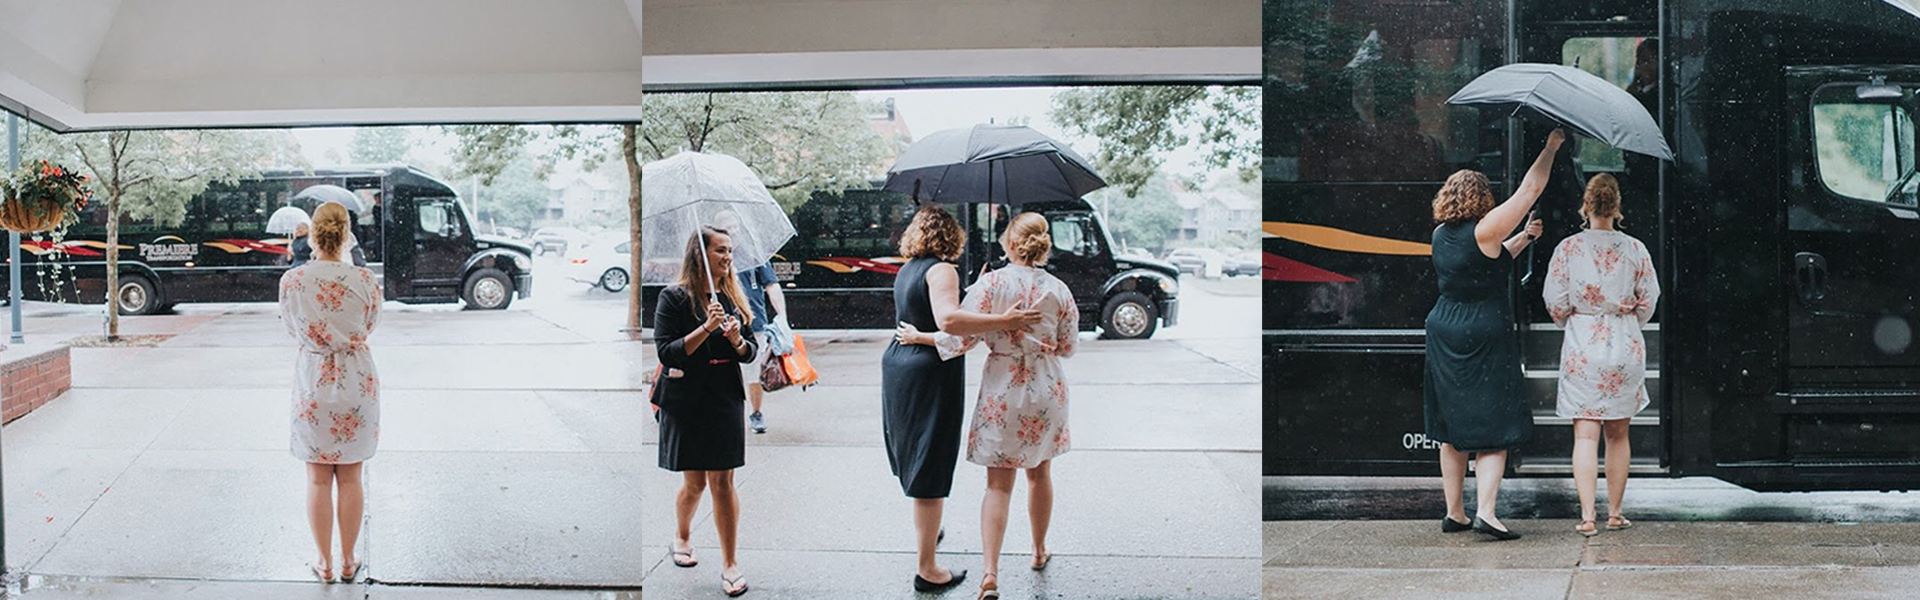 WEDDING TRANSPORTATION FOR EVERY OCCASION